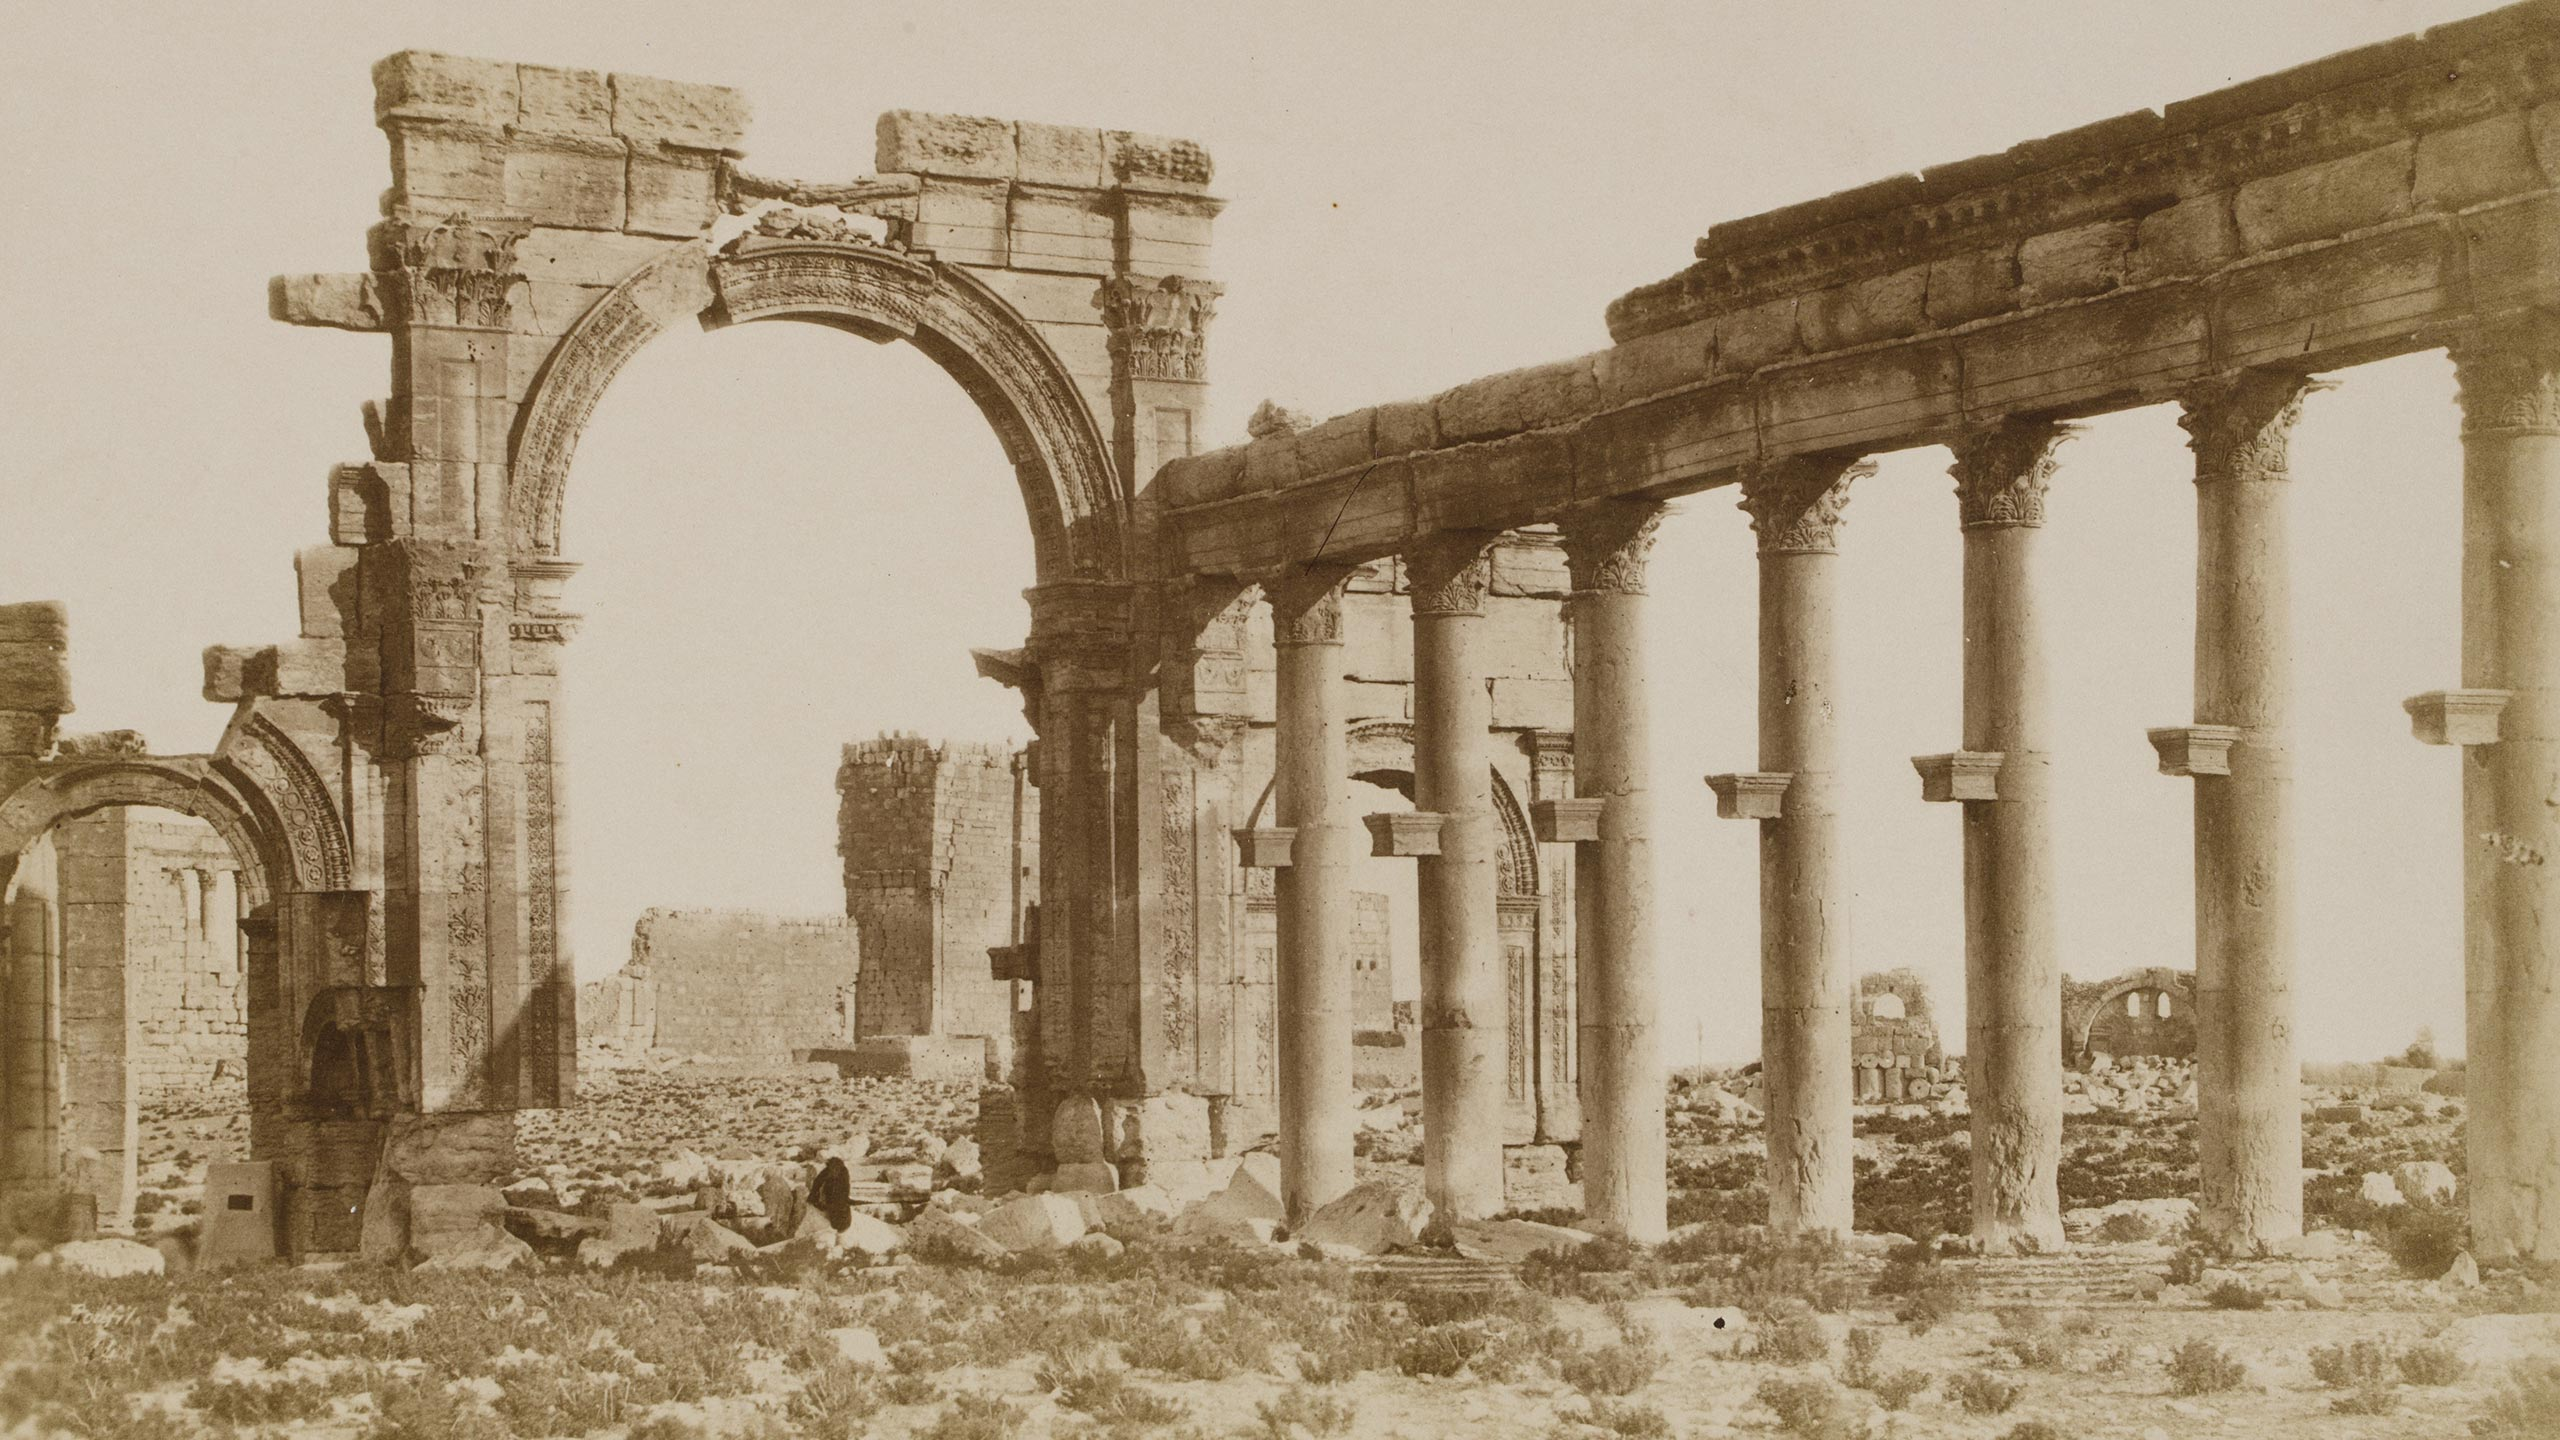 Photograph of an arch and colonnade, Palmyra, Syria